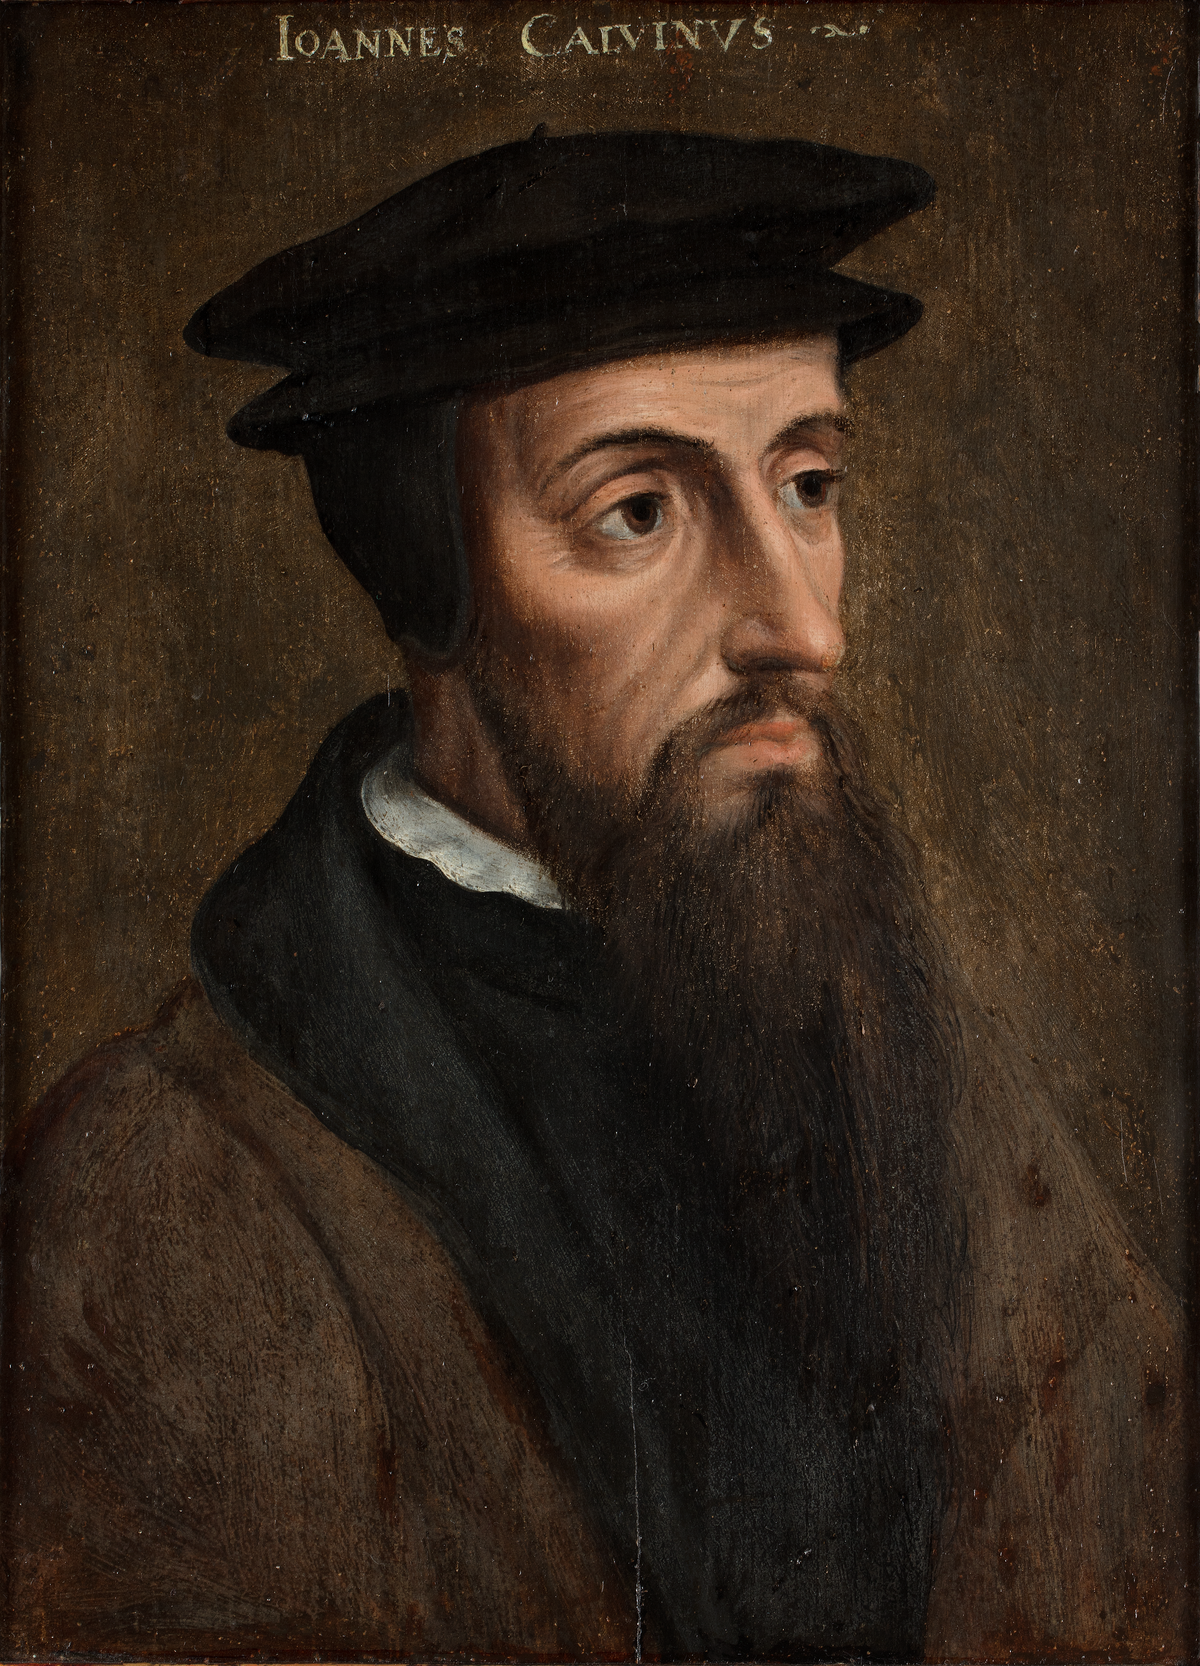 Essays on the Life, Work, and Theology of John Calvin